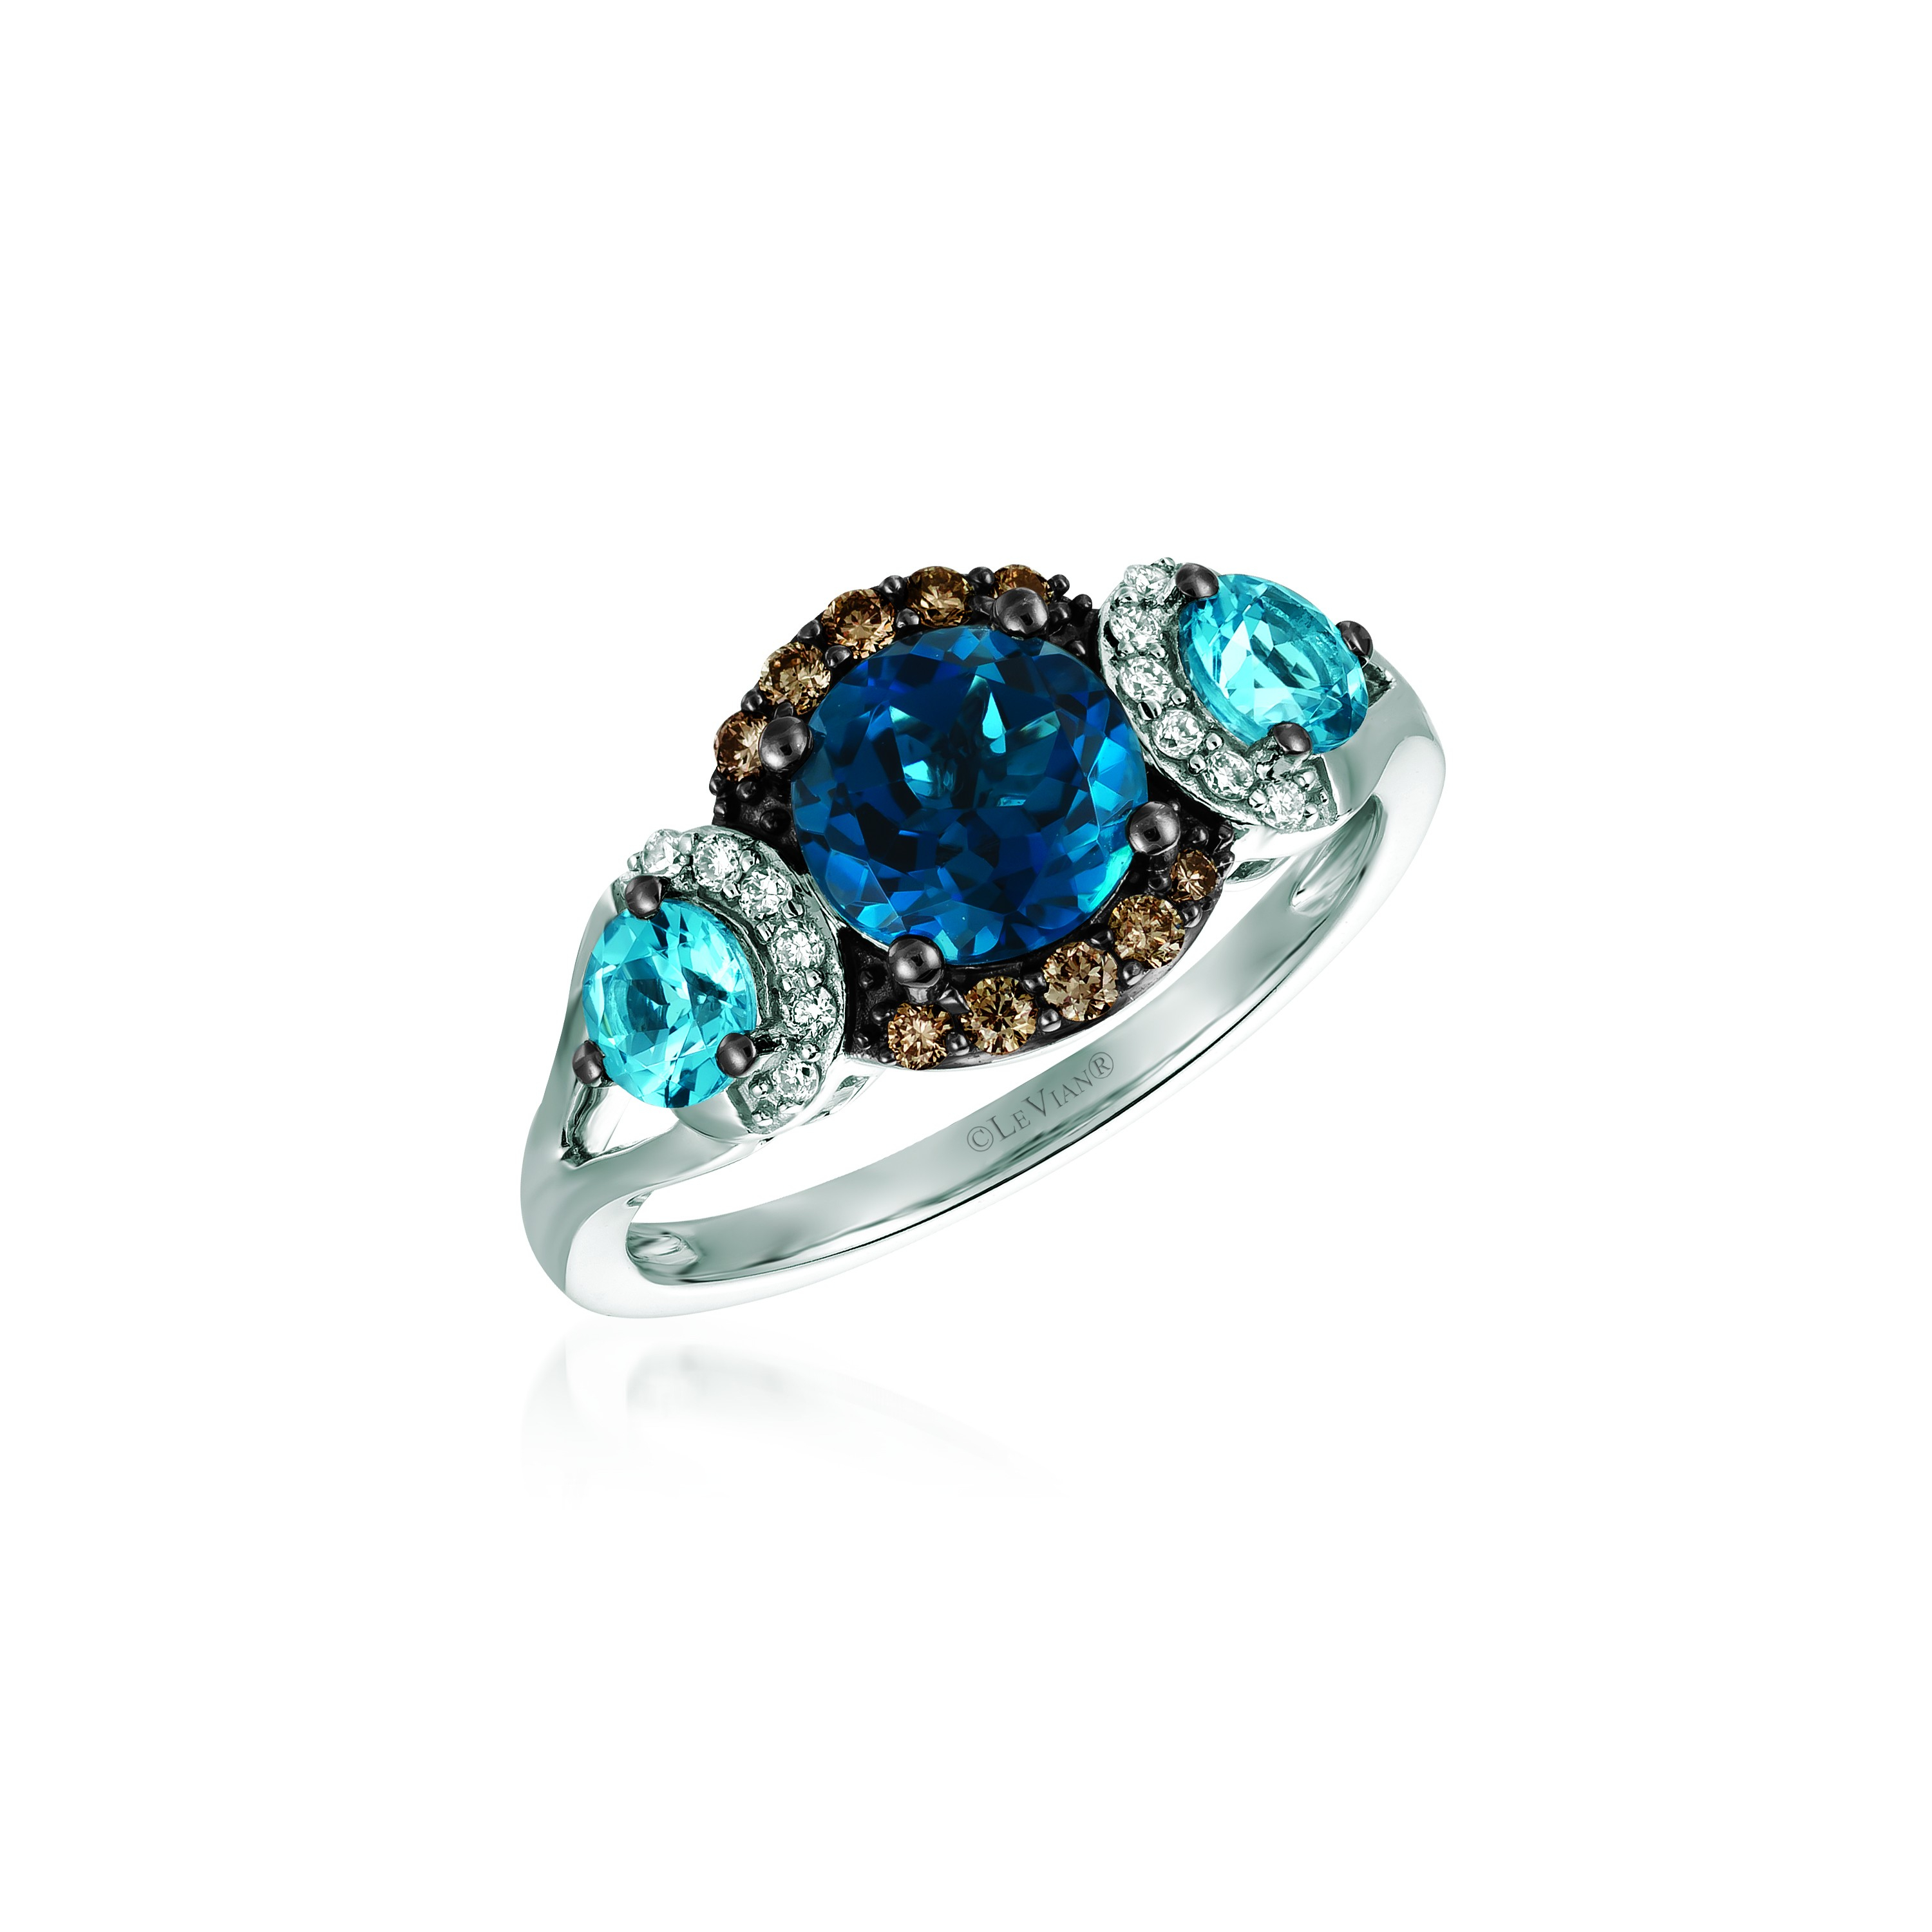 14k White Gold Ring With Ocean Blue Topaz 0.57 Cts (View 18 of 25)